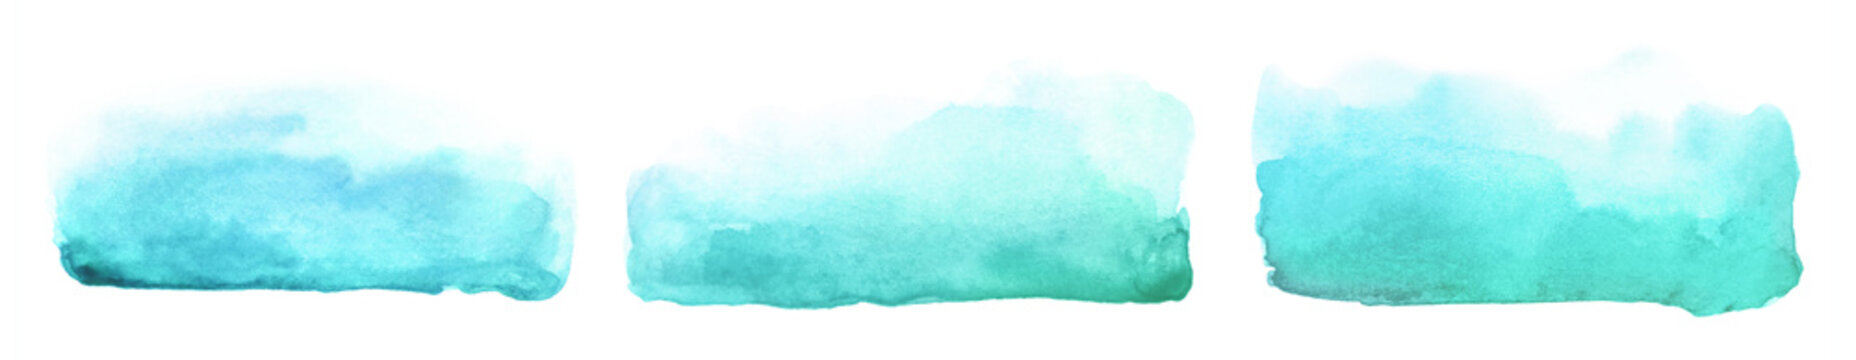 Collection of abstract watercolor blue green brush strokes.